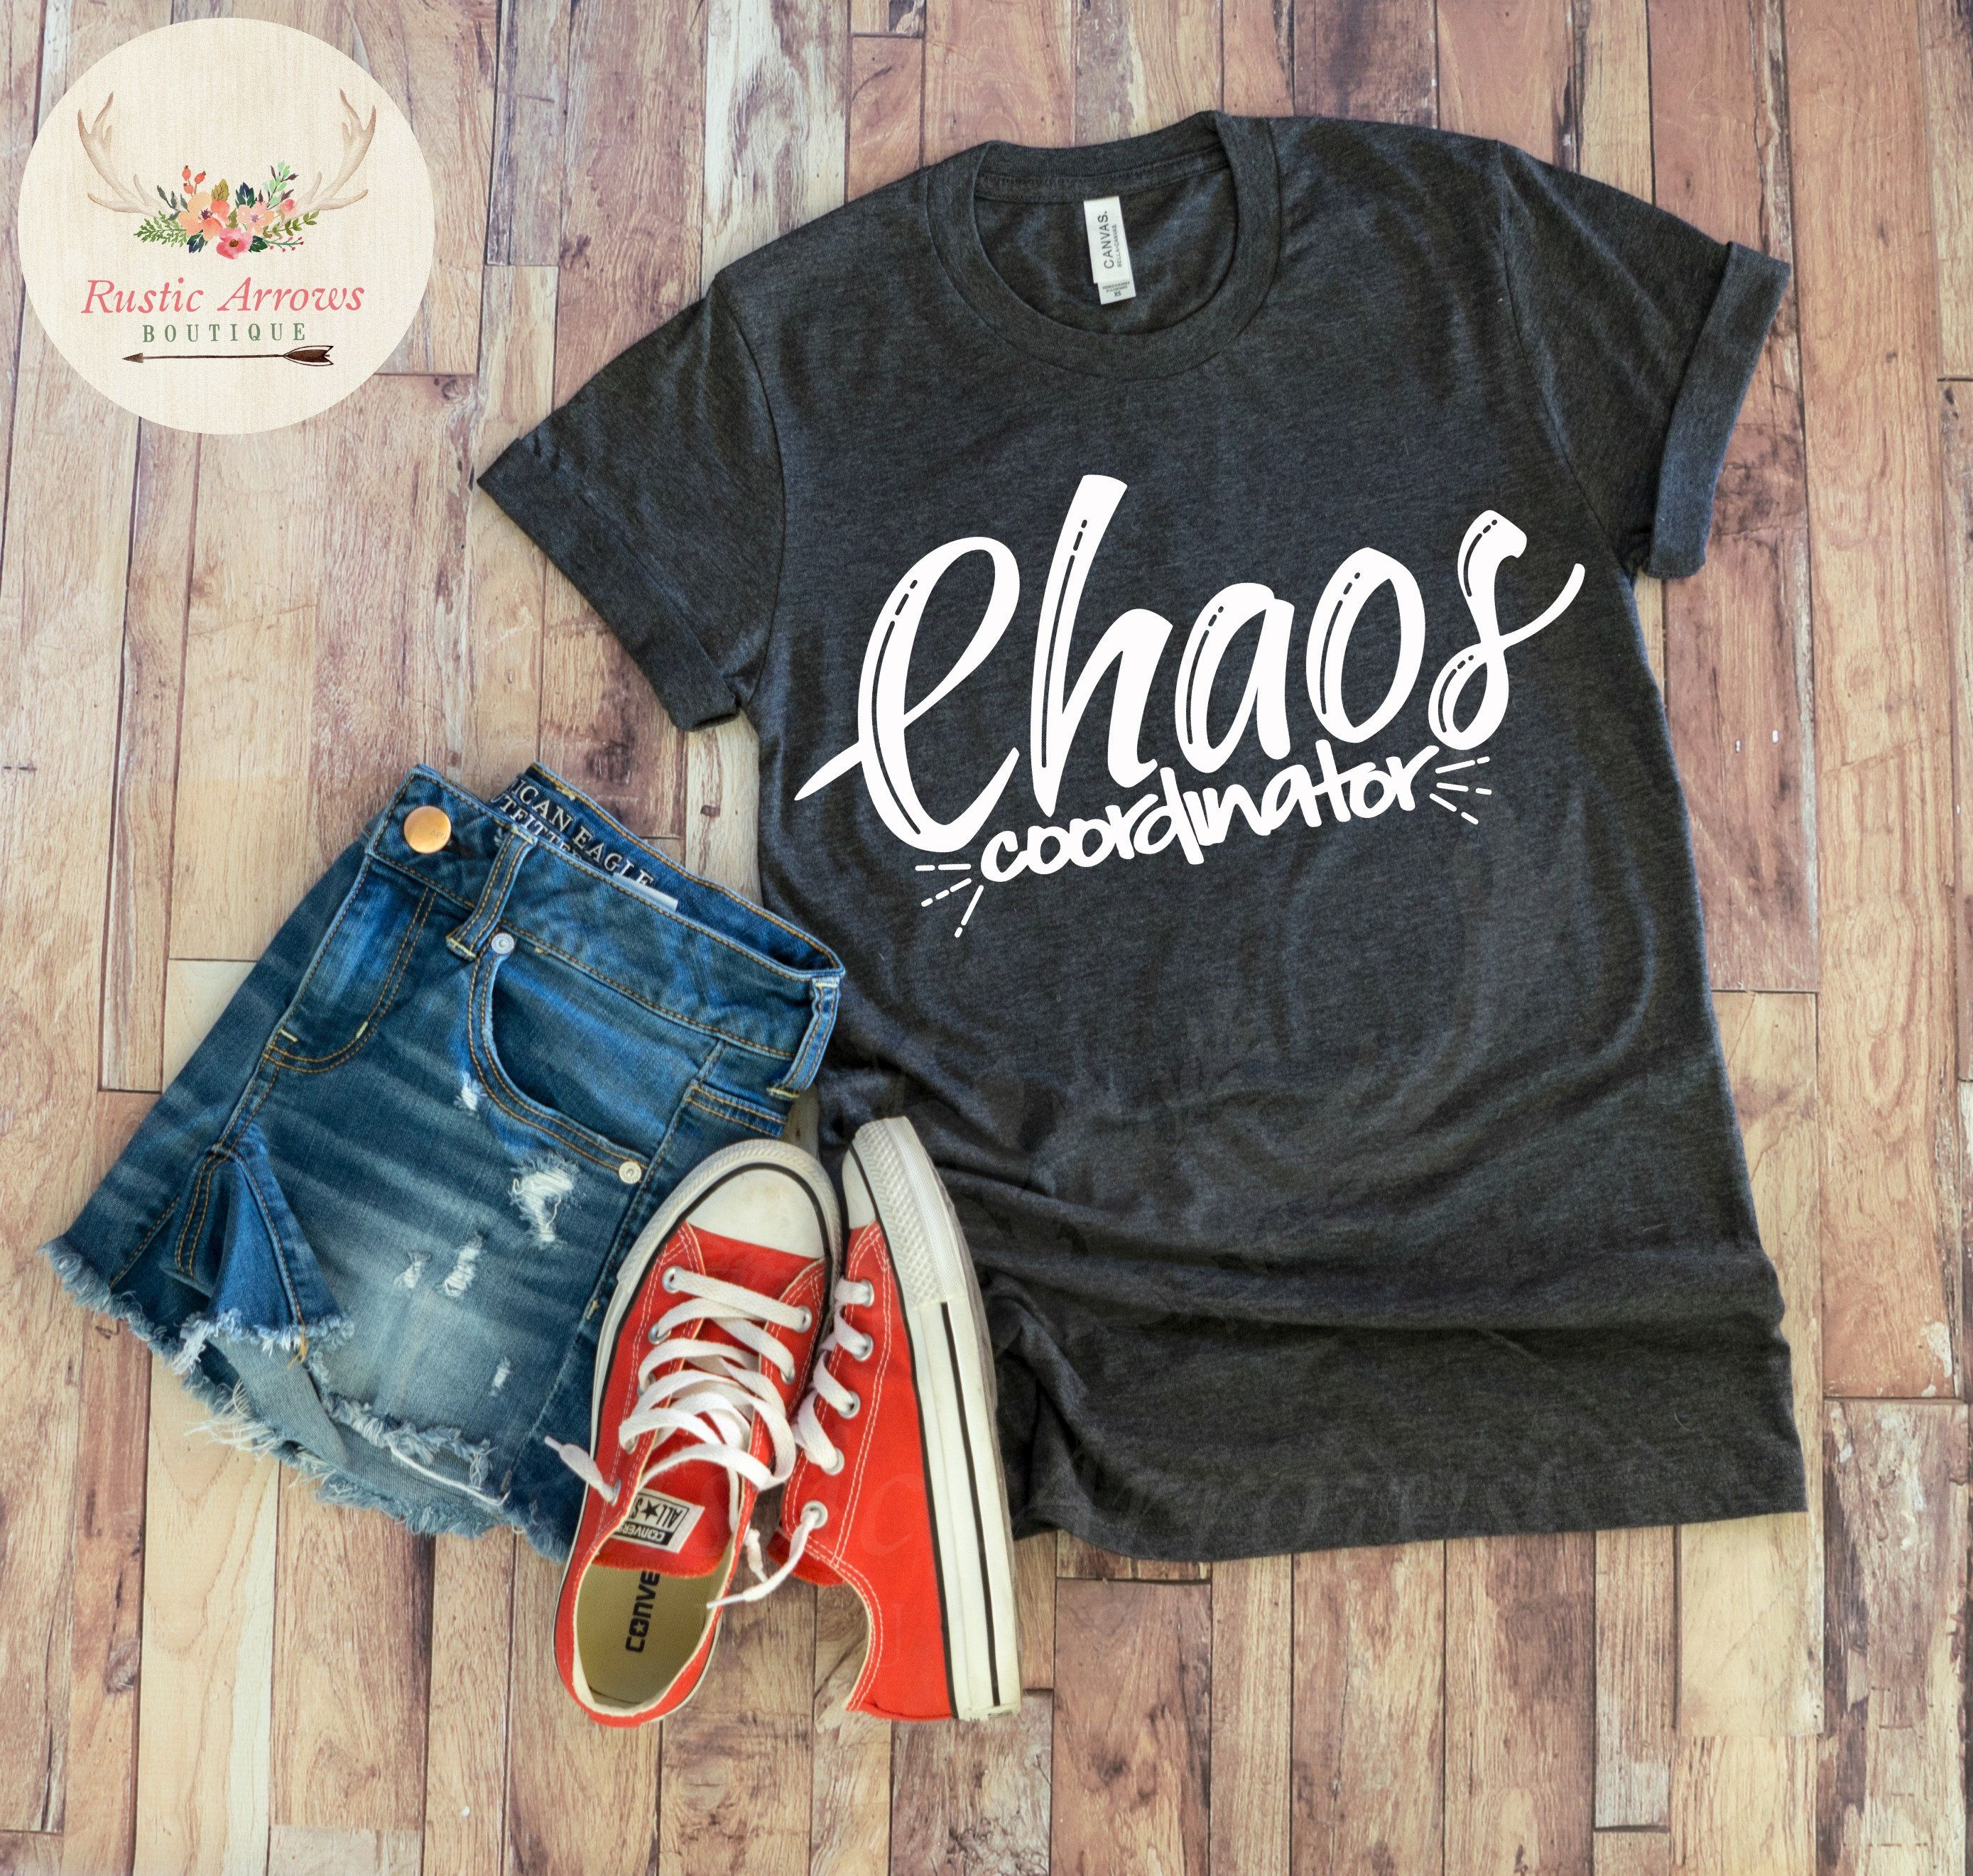 7764b748a6d3 Chaos Coordintor tshirt for women. Mom tshirt can be customized with your  color choice and comes in a variety of sizes and colors.